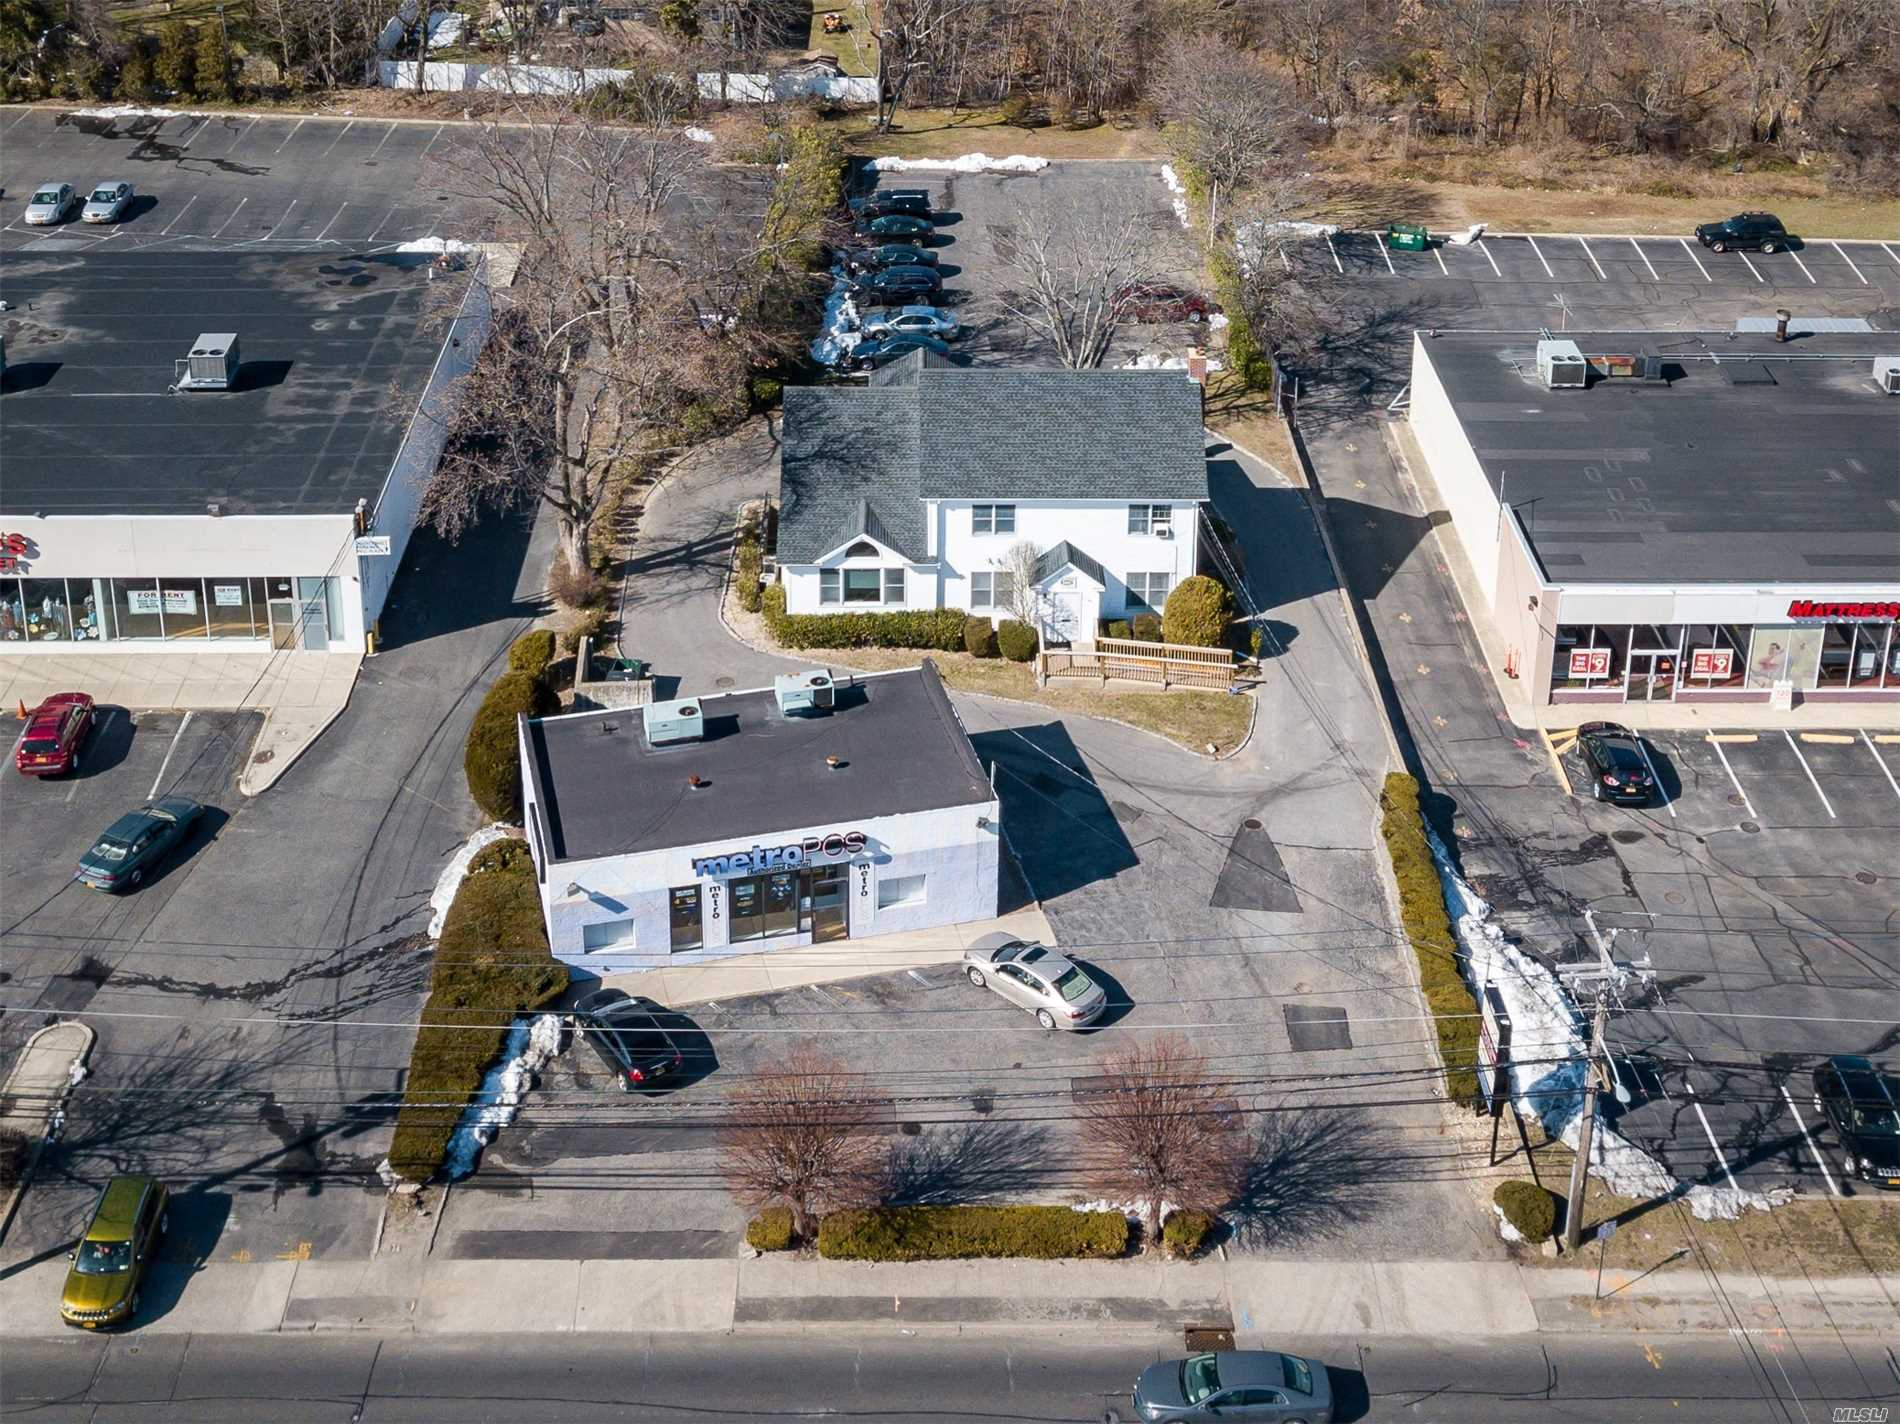 Located On The North Side Of Jericho Tpke. Two Separate Structures On 1 Lot With 30-Car Parking Spots. Single Story Bldg Located In The Front Of Property W/5-Parking Spaces. Rear Bldg Is A 2-Story 4, 000Sf Office Building With Multiple Private And Professional Suites. Rear Building Has A Full Finished Basement And Walk-Up Attic. Rear Parking For 25-Cars.